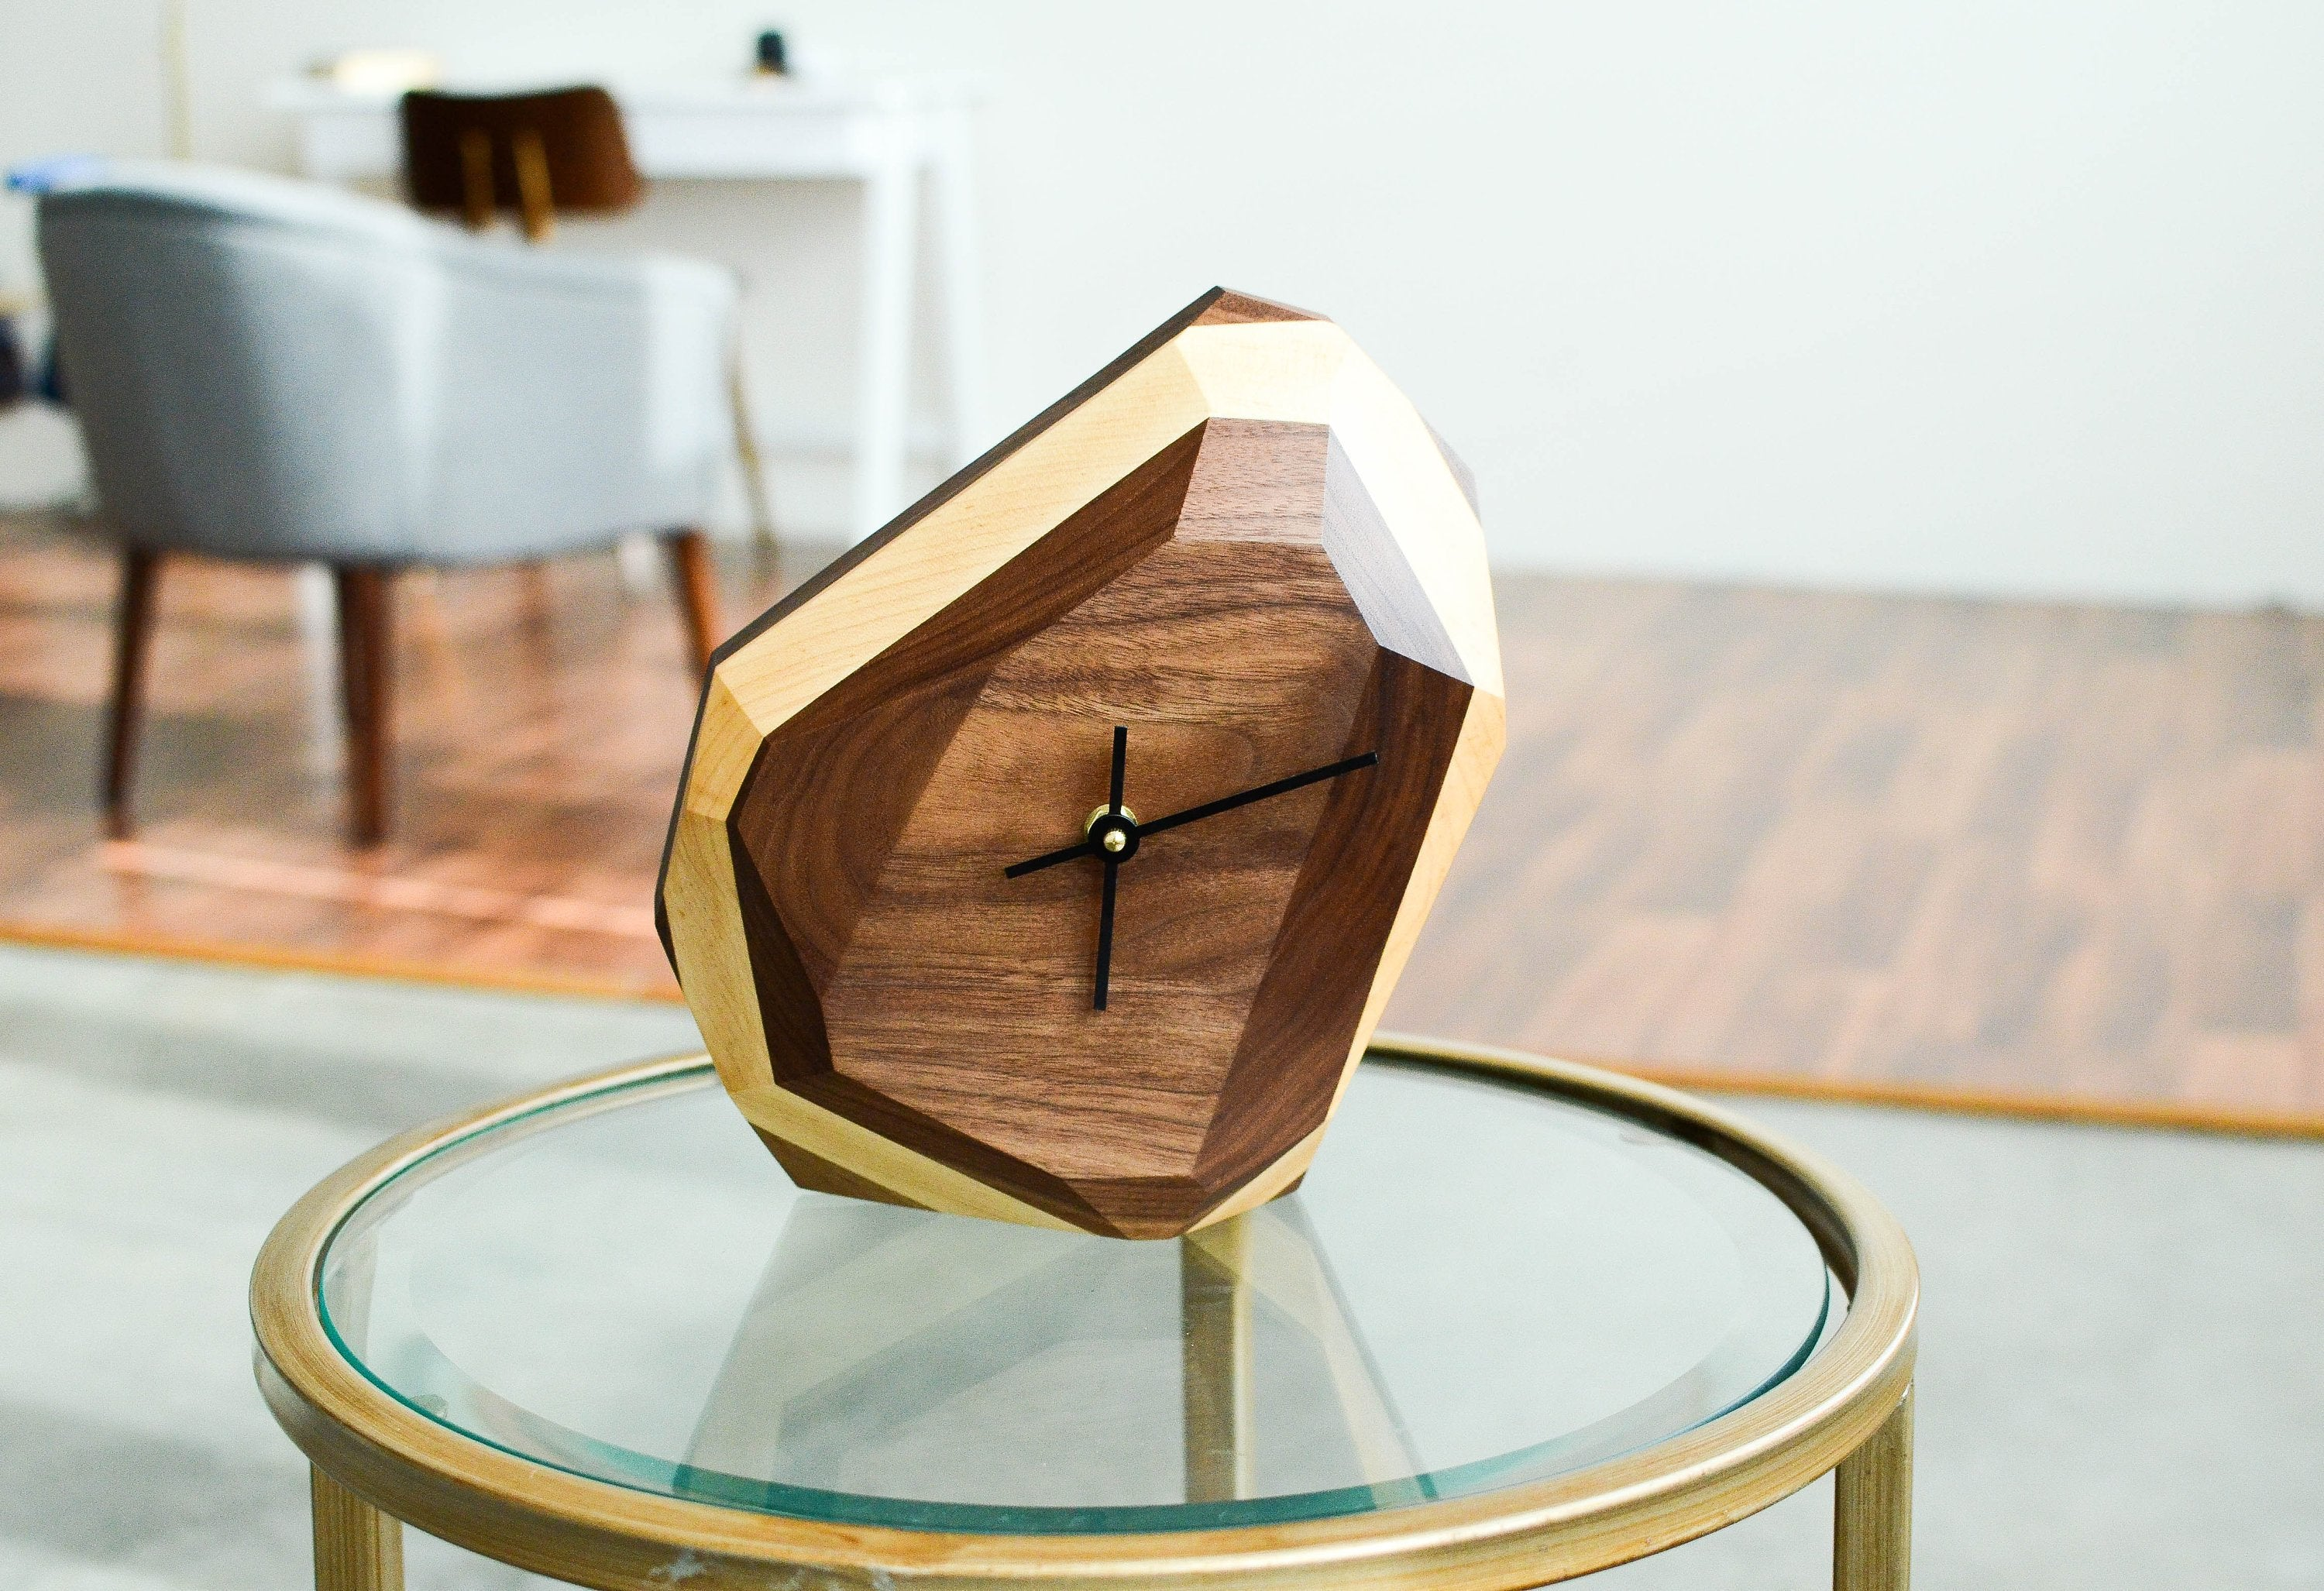 wood, clock, dial, geometric, minimalist, simple, modern, abstract, art, gem like, cut, angled, time, brown, natural, neutral, gold, black, maple, black walnut